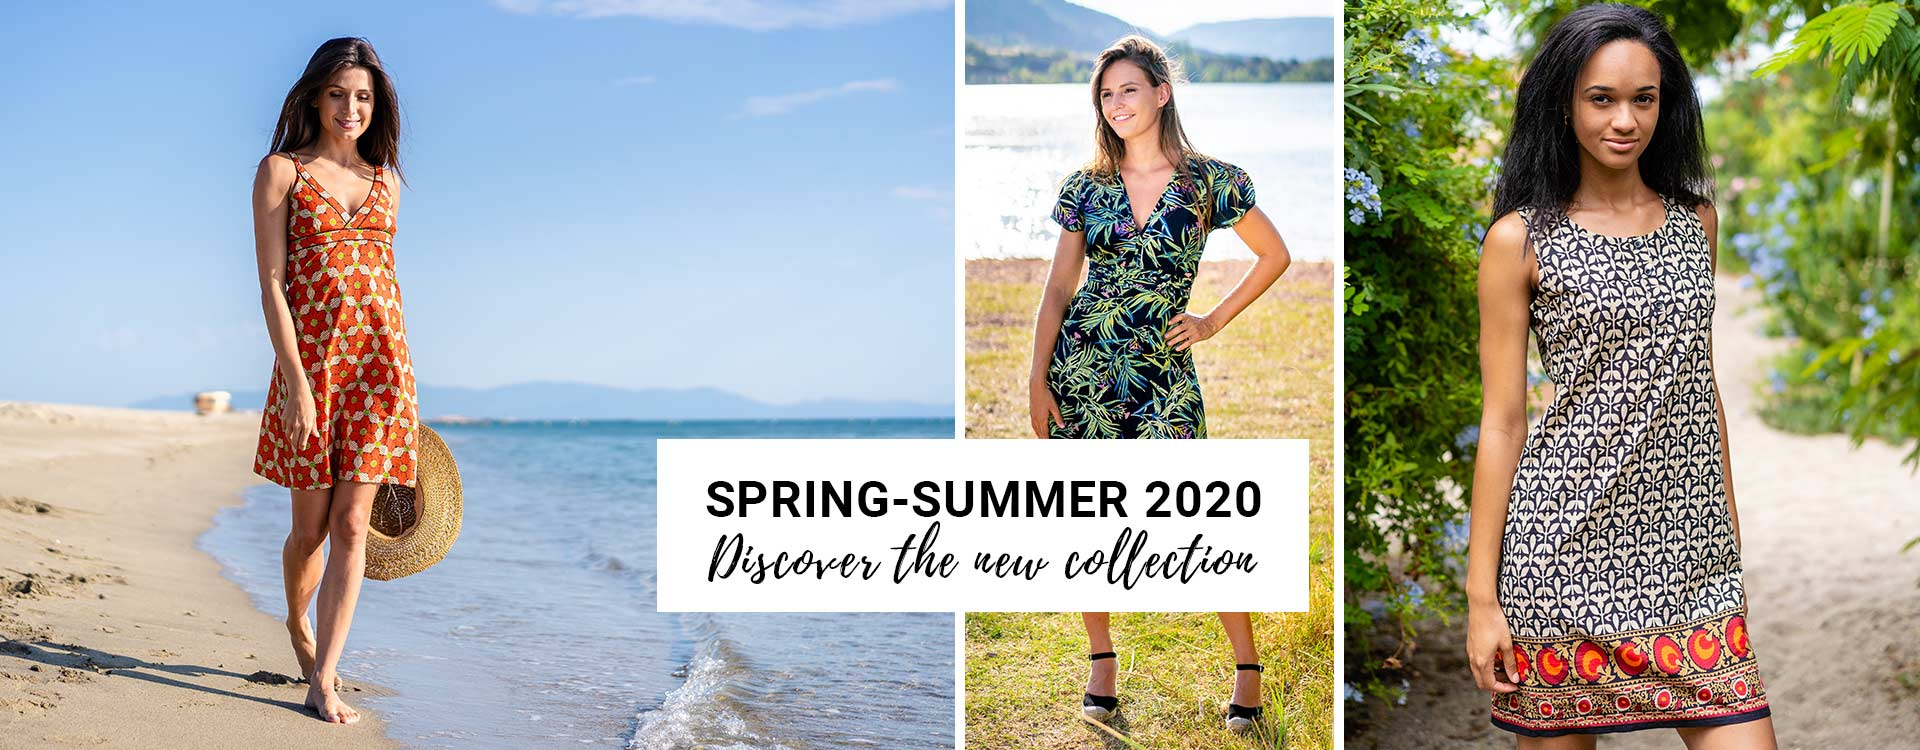 Discover spring summer 2020 collection